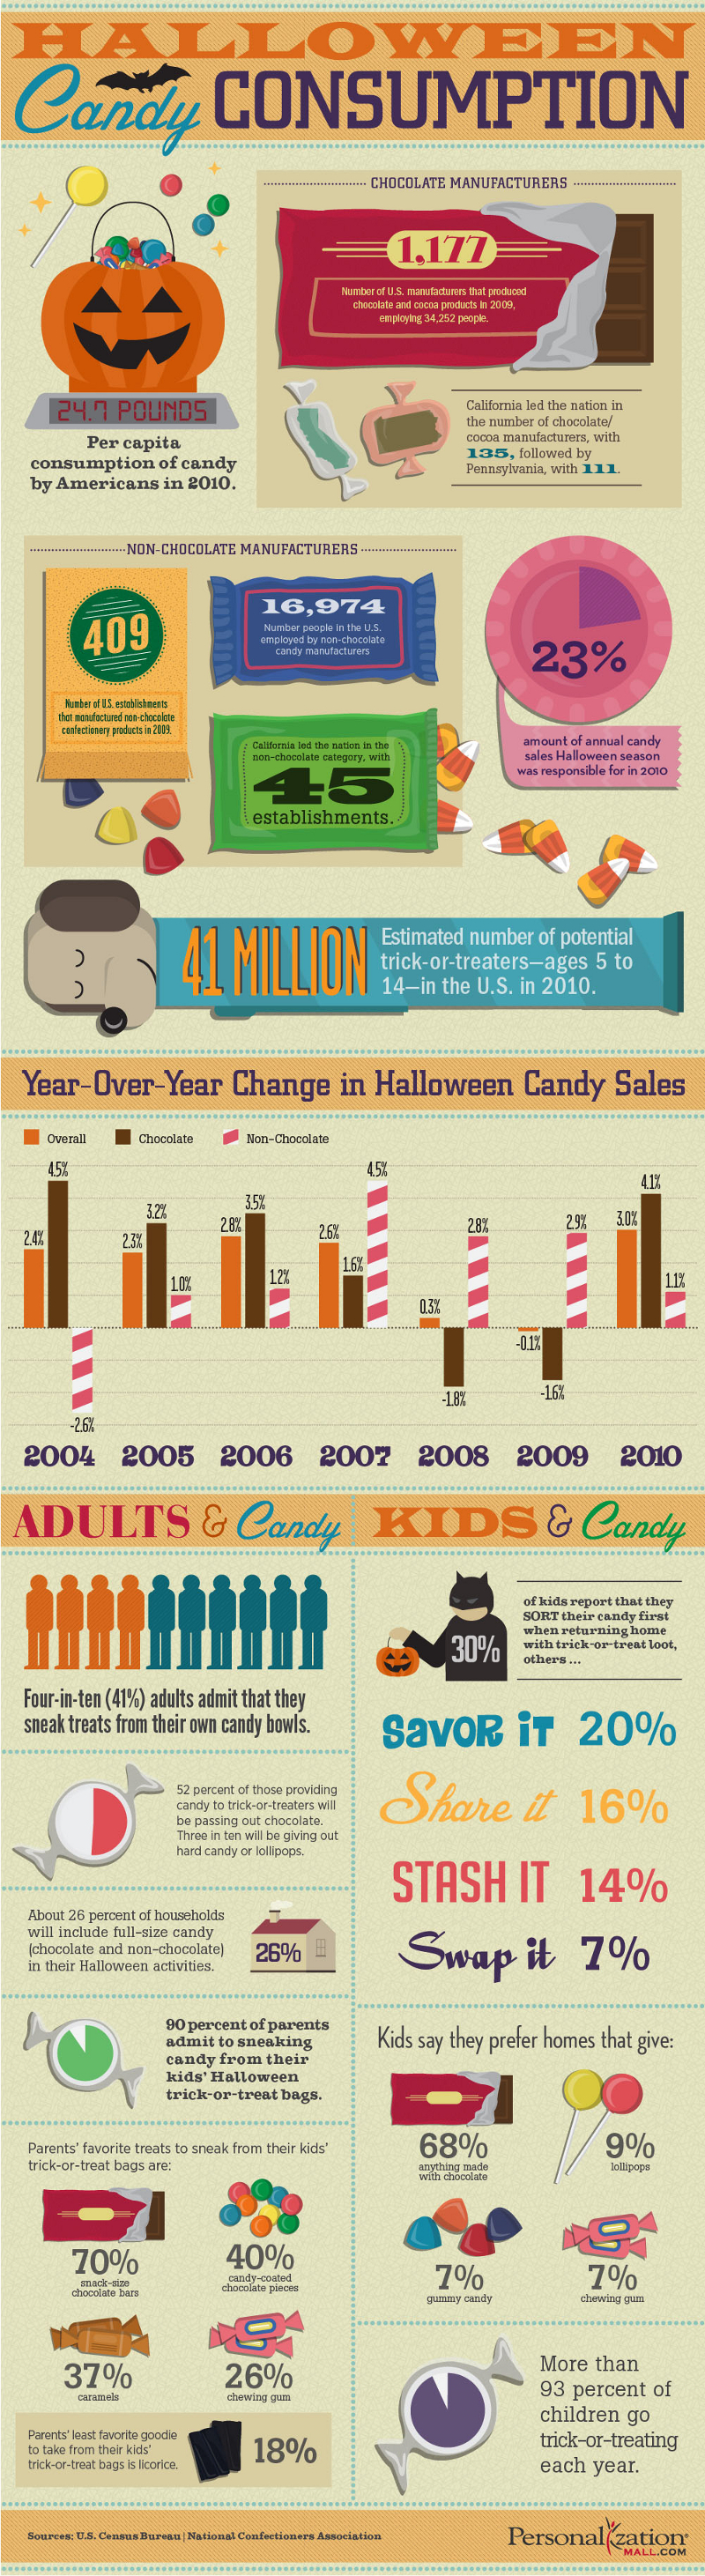 Candy Consumption Facts